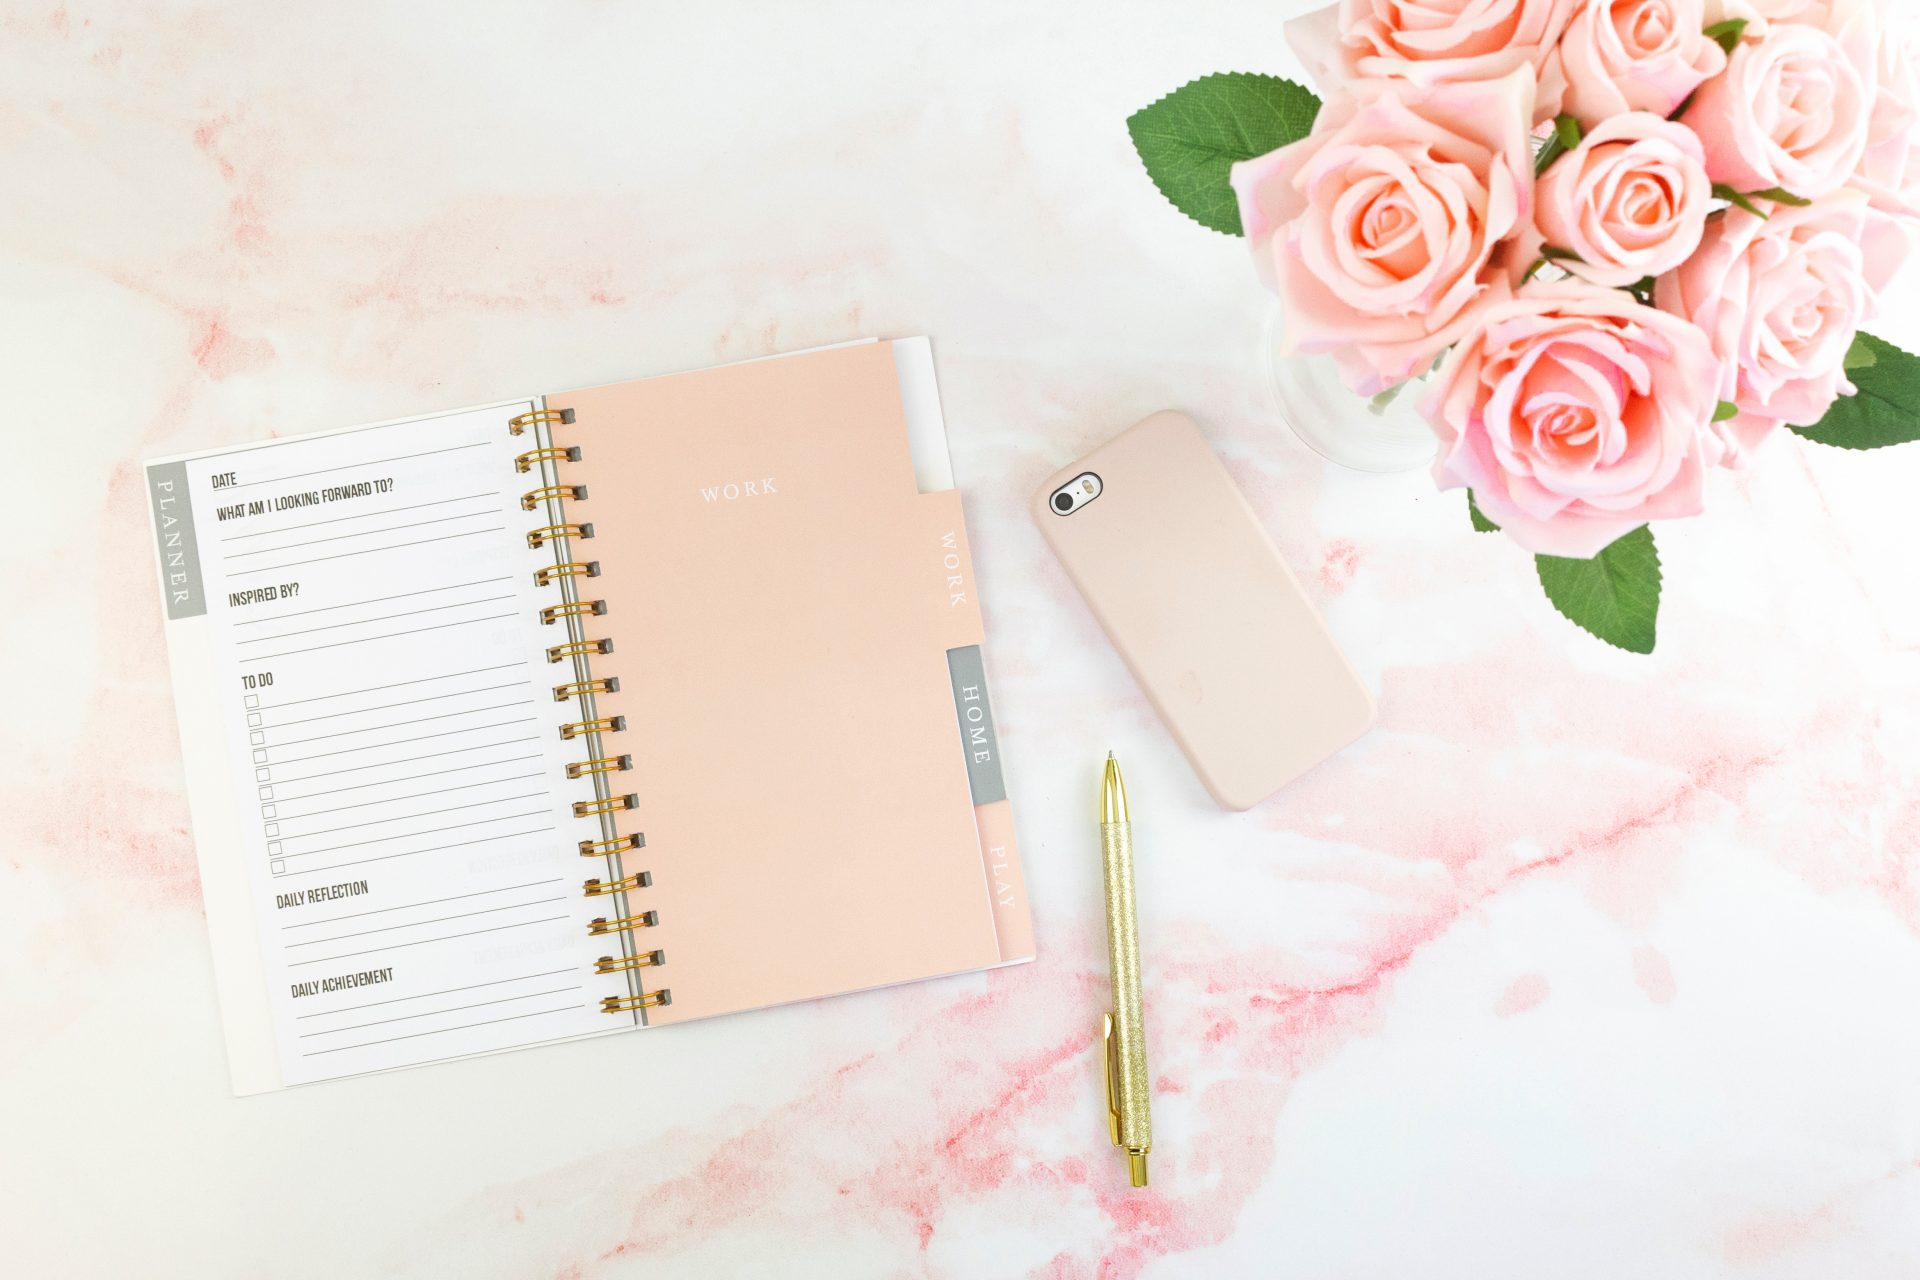 Planner with pen, phone and roses